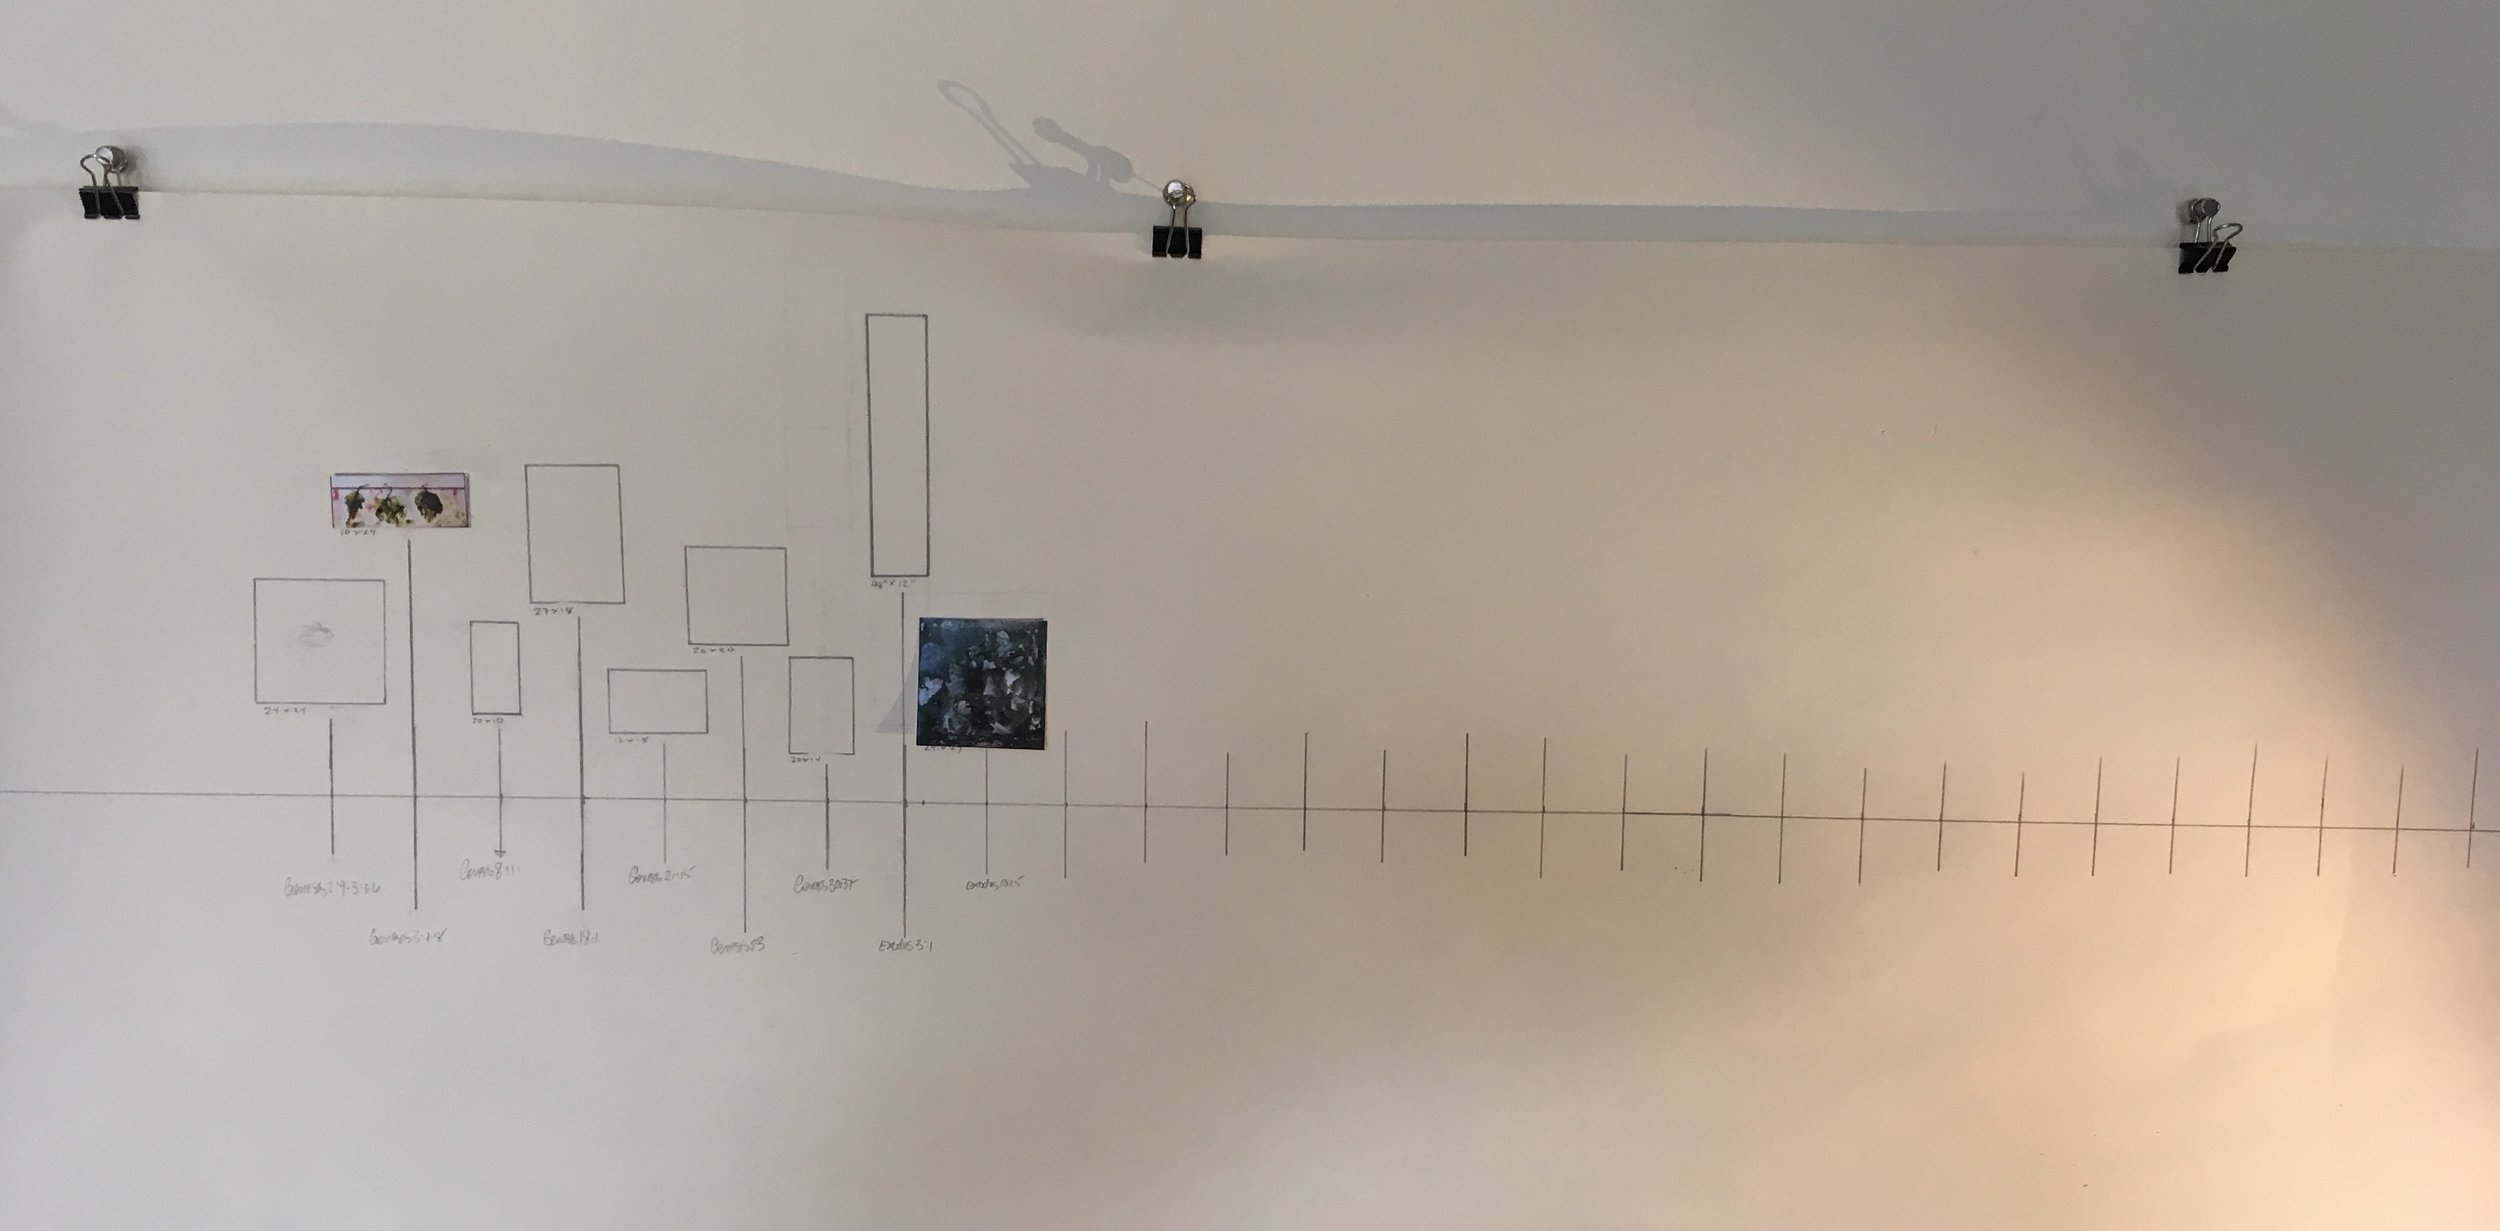 I've created a wall map to organize the images and to mark the progress of the project.